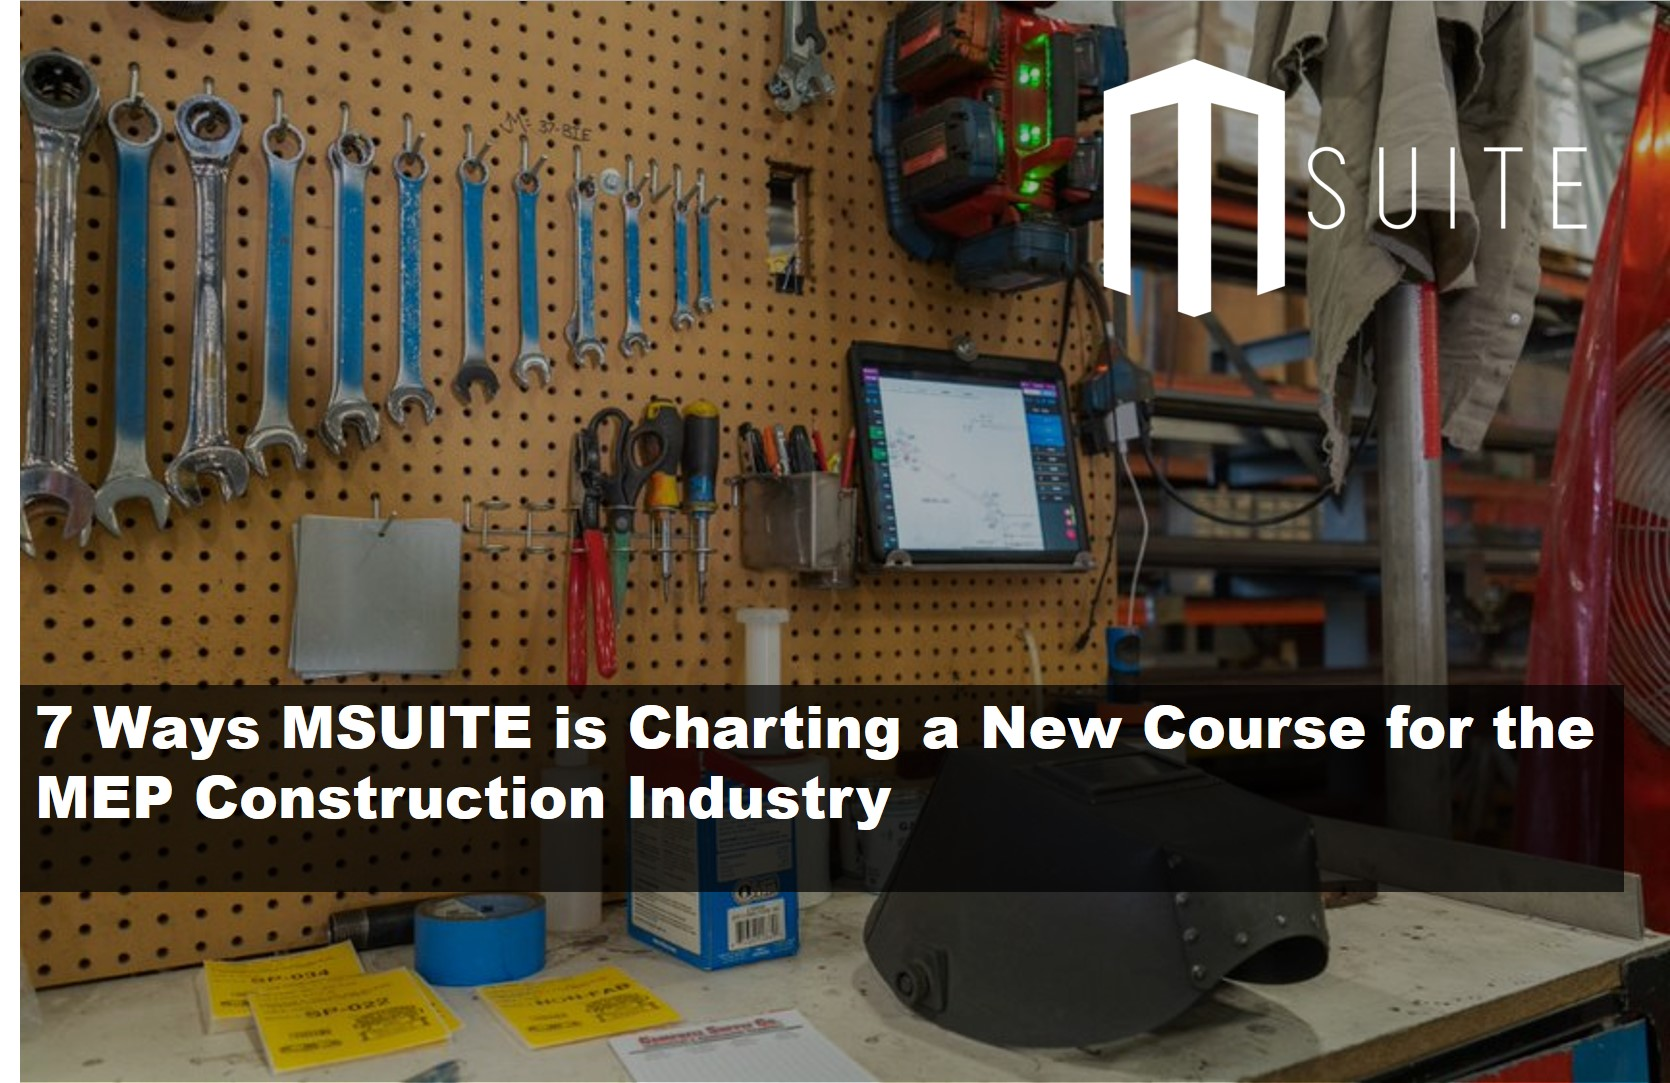 7 Ways MSUITE is Charting a New Course for the MEP Construction Industry